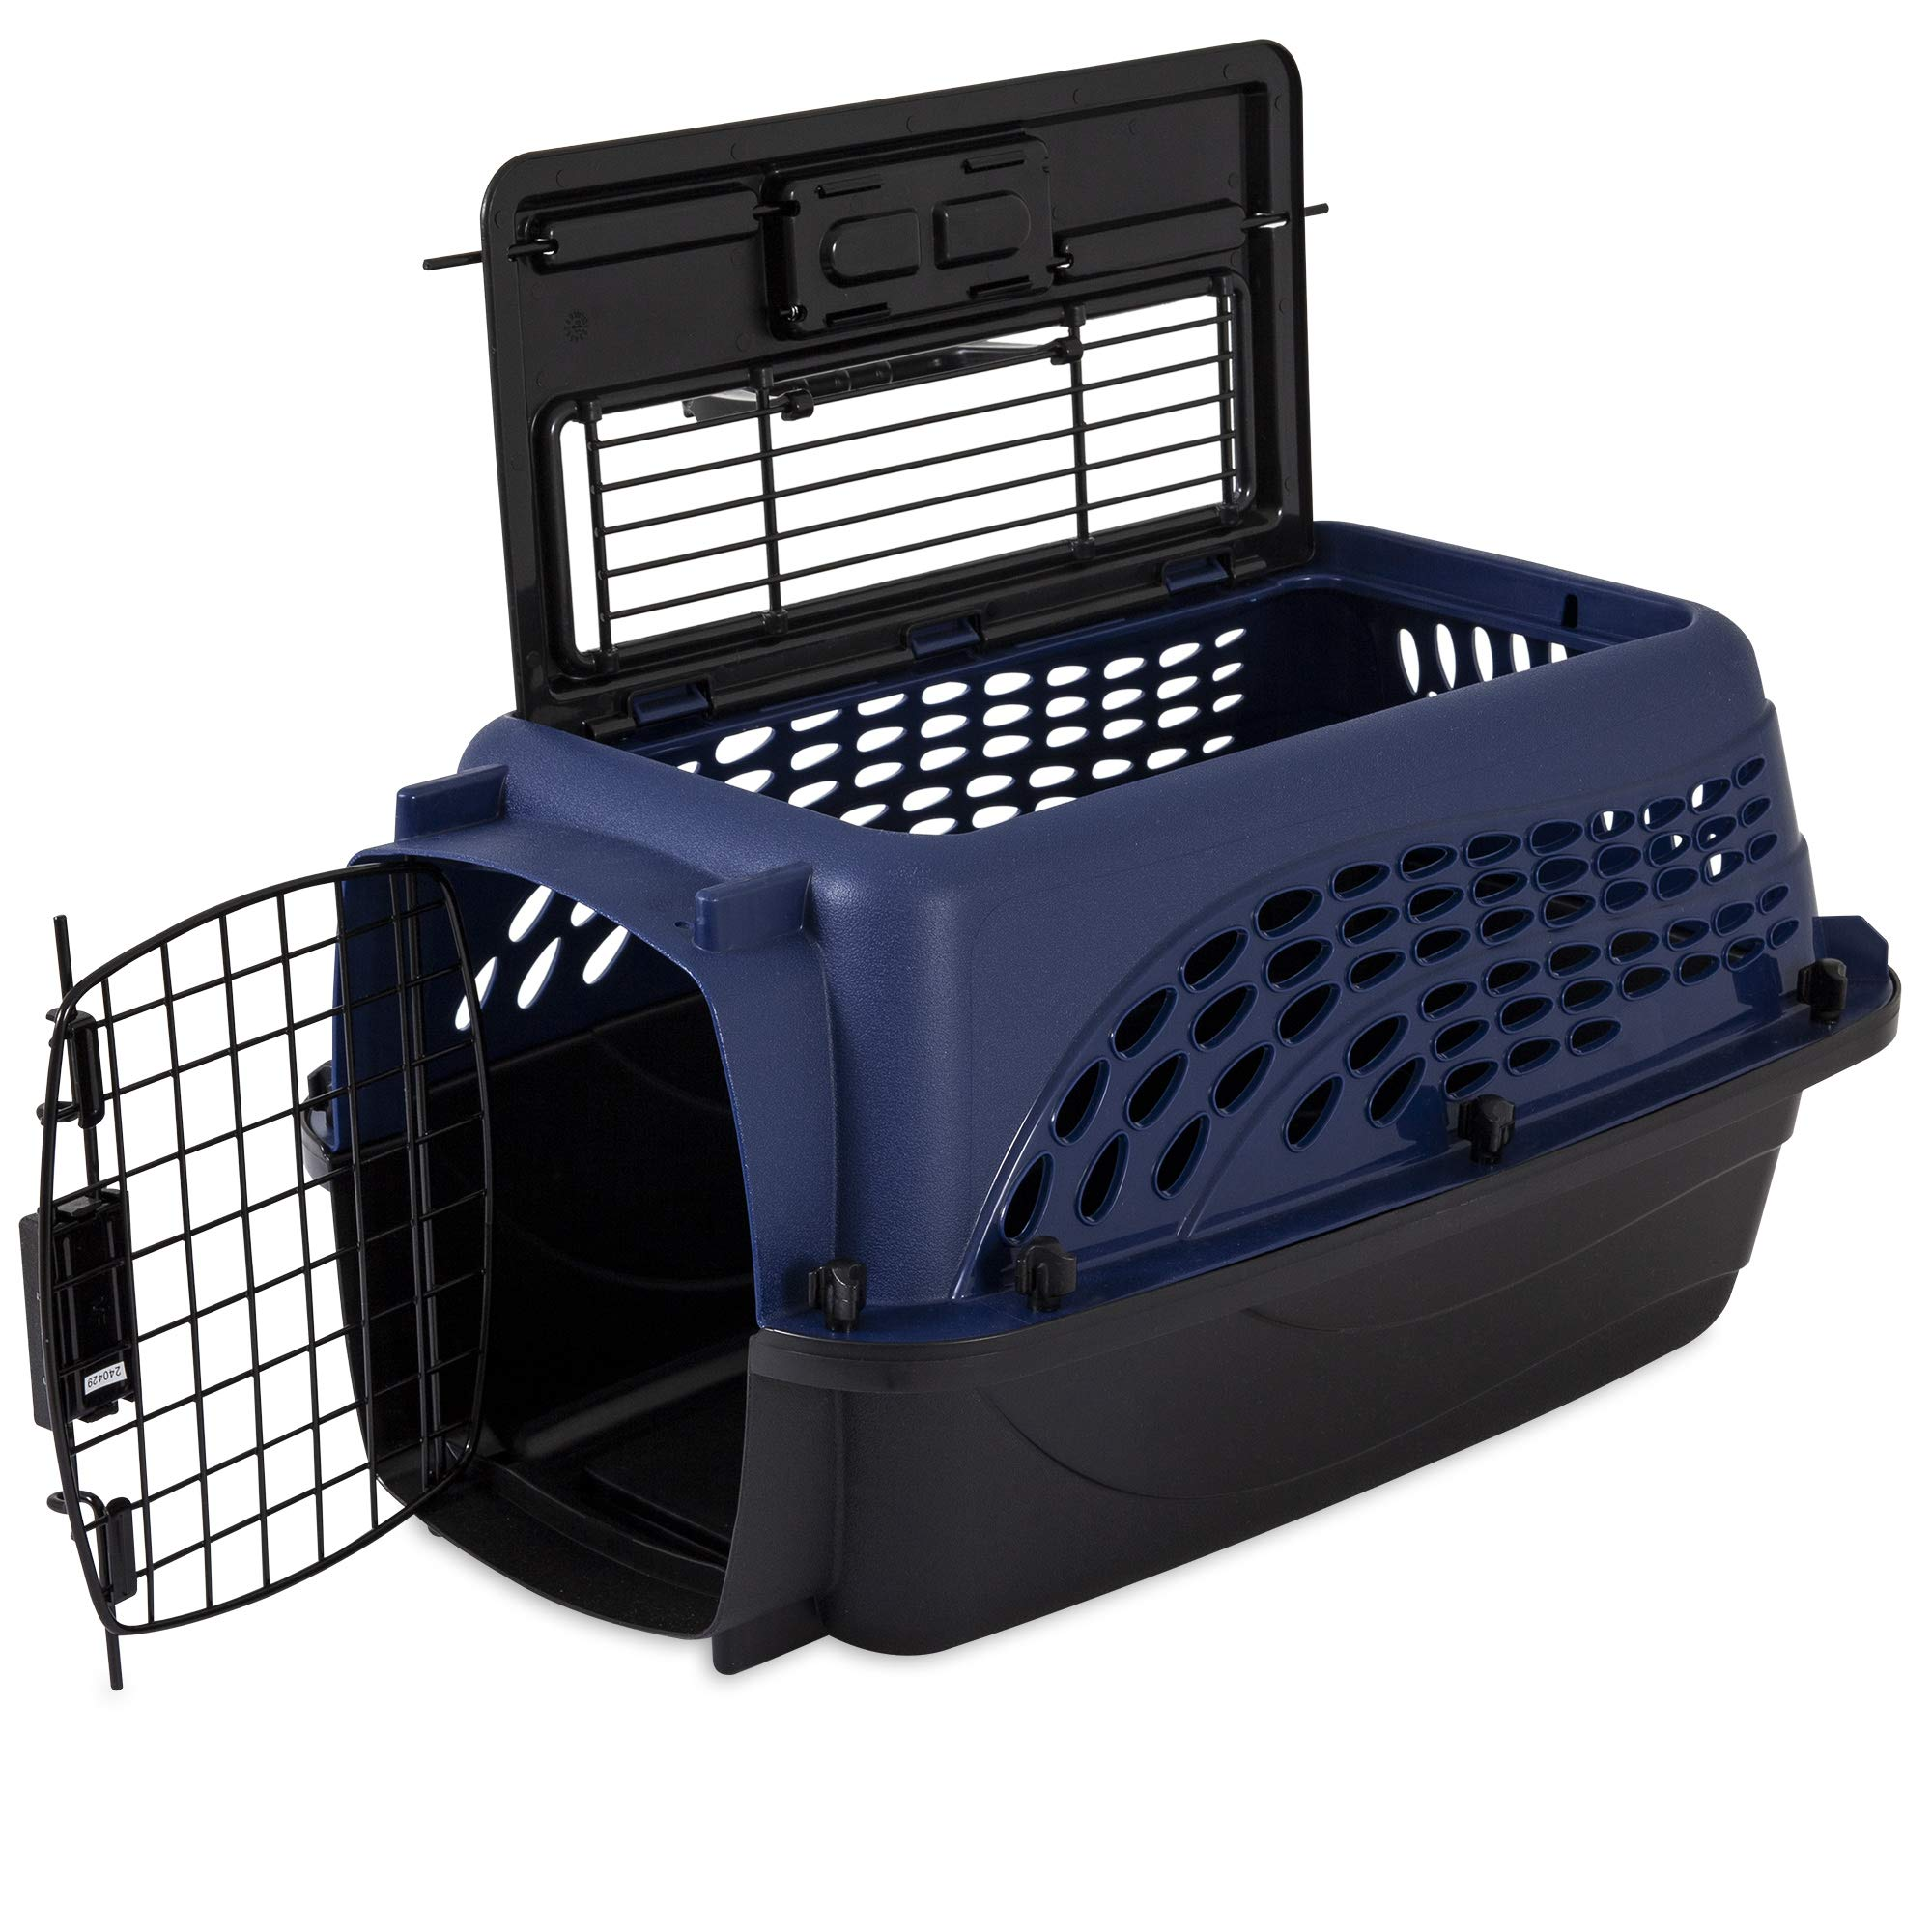 Doskocil Two-Door Top-Loading Kennel - 19'' Plastic and Metal Kennel - Max Pet Weight 10 lbs by Doskocil